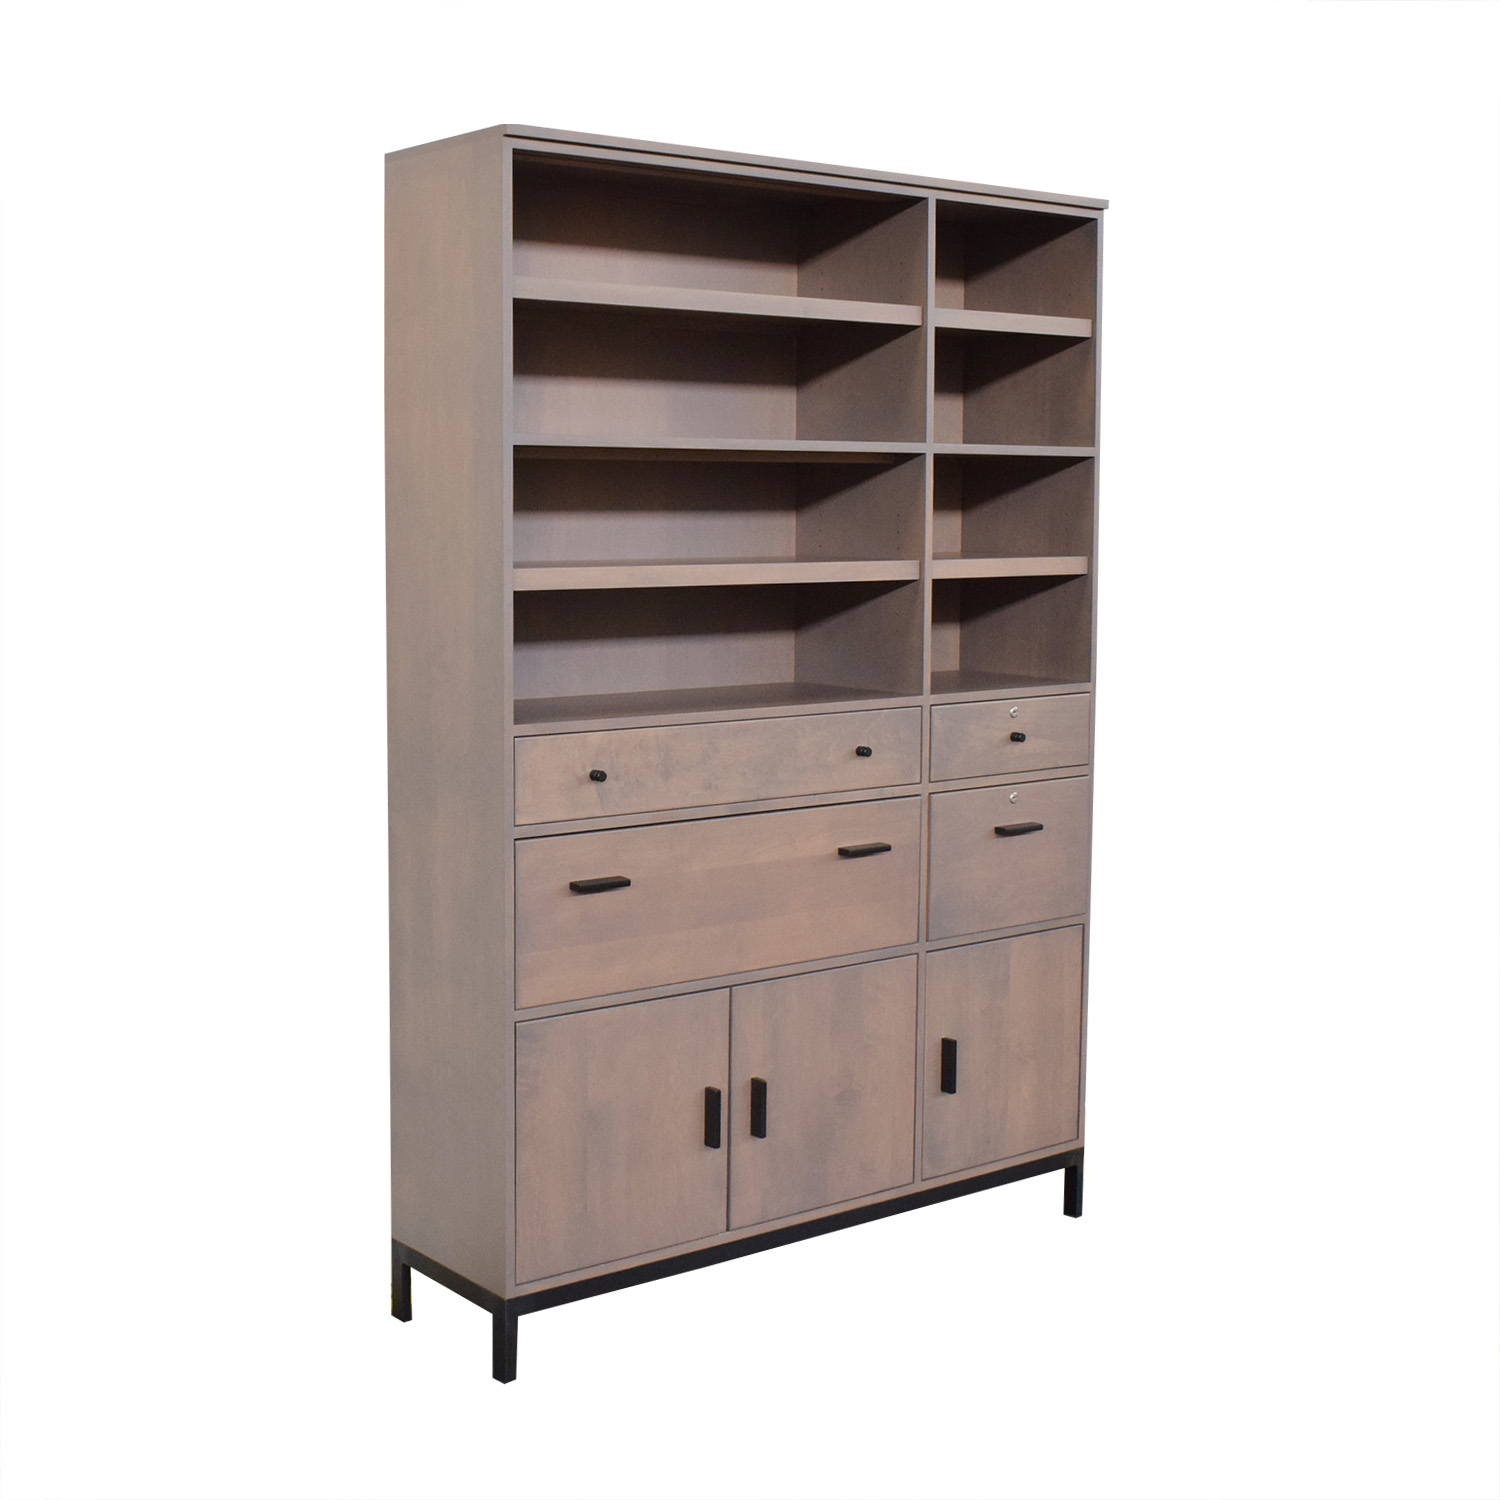 Room & Board Storage Cabinet Bookcase / Cabinets & Sideboards